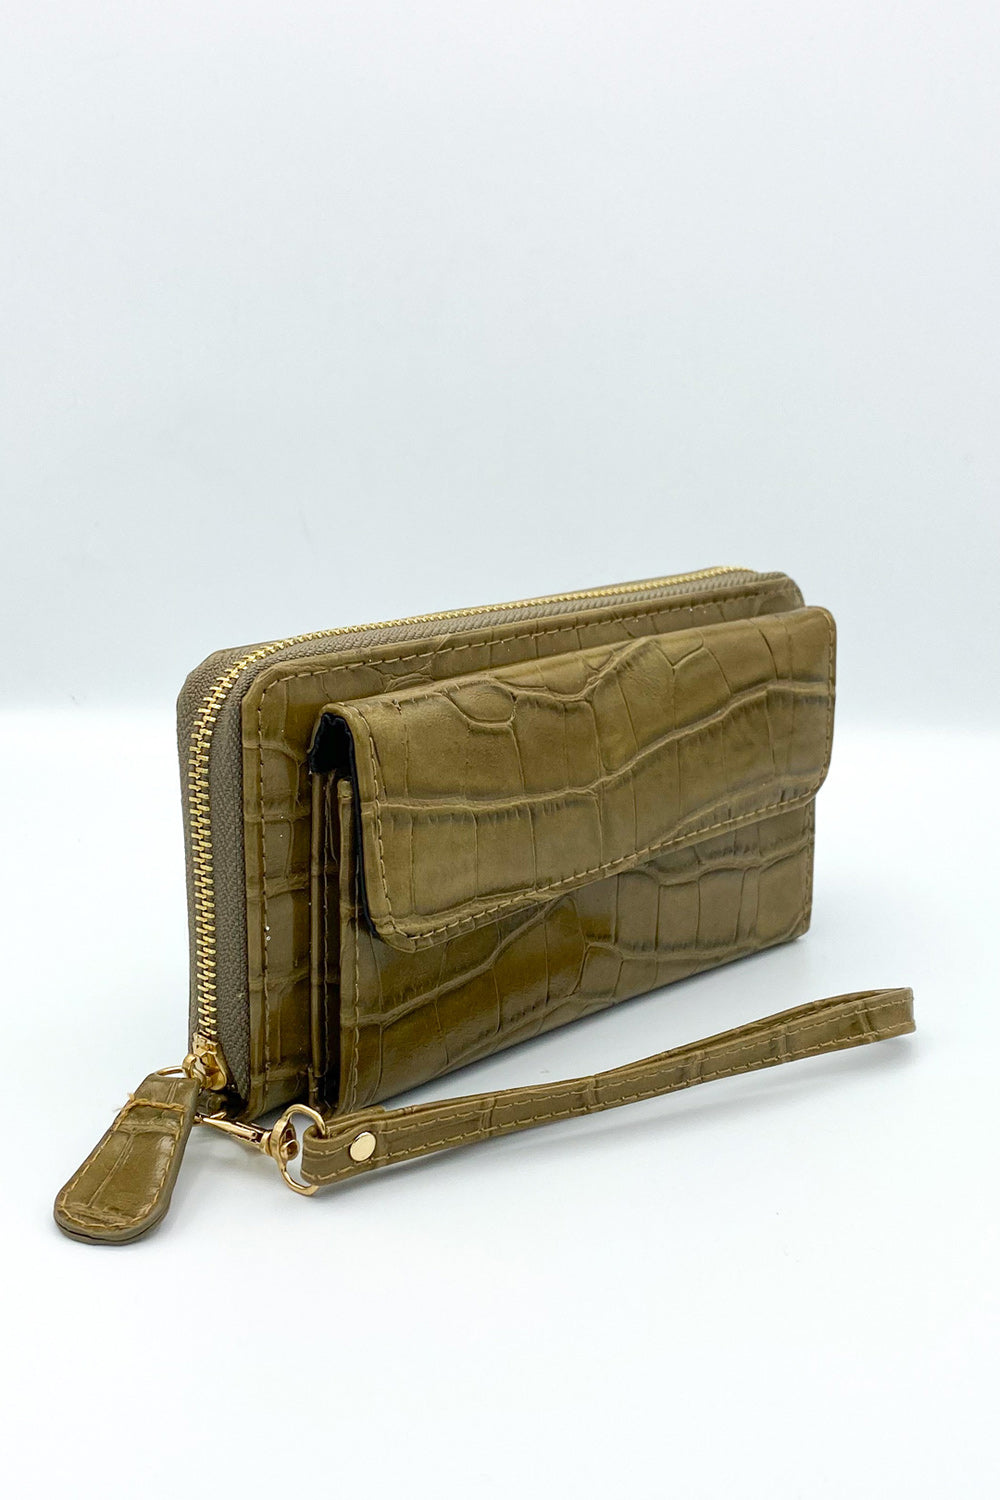 Croc Vegan Leather Wristlet